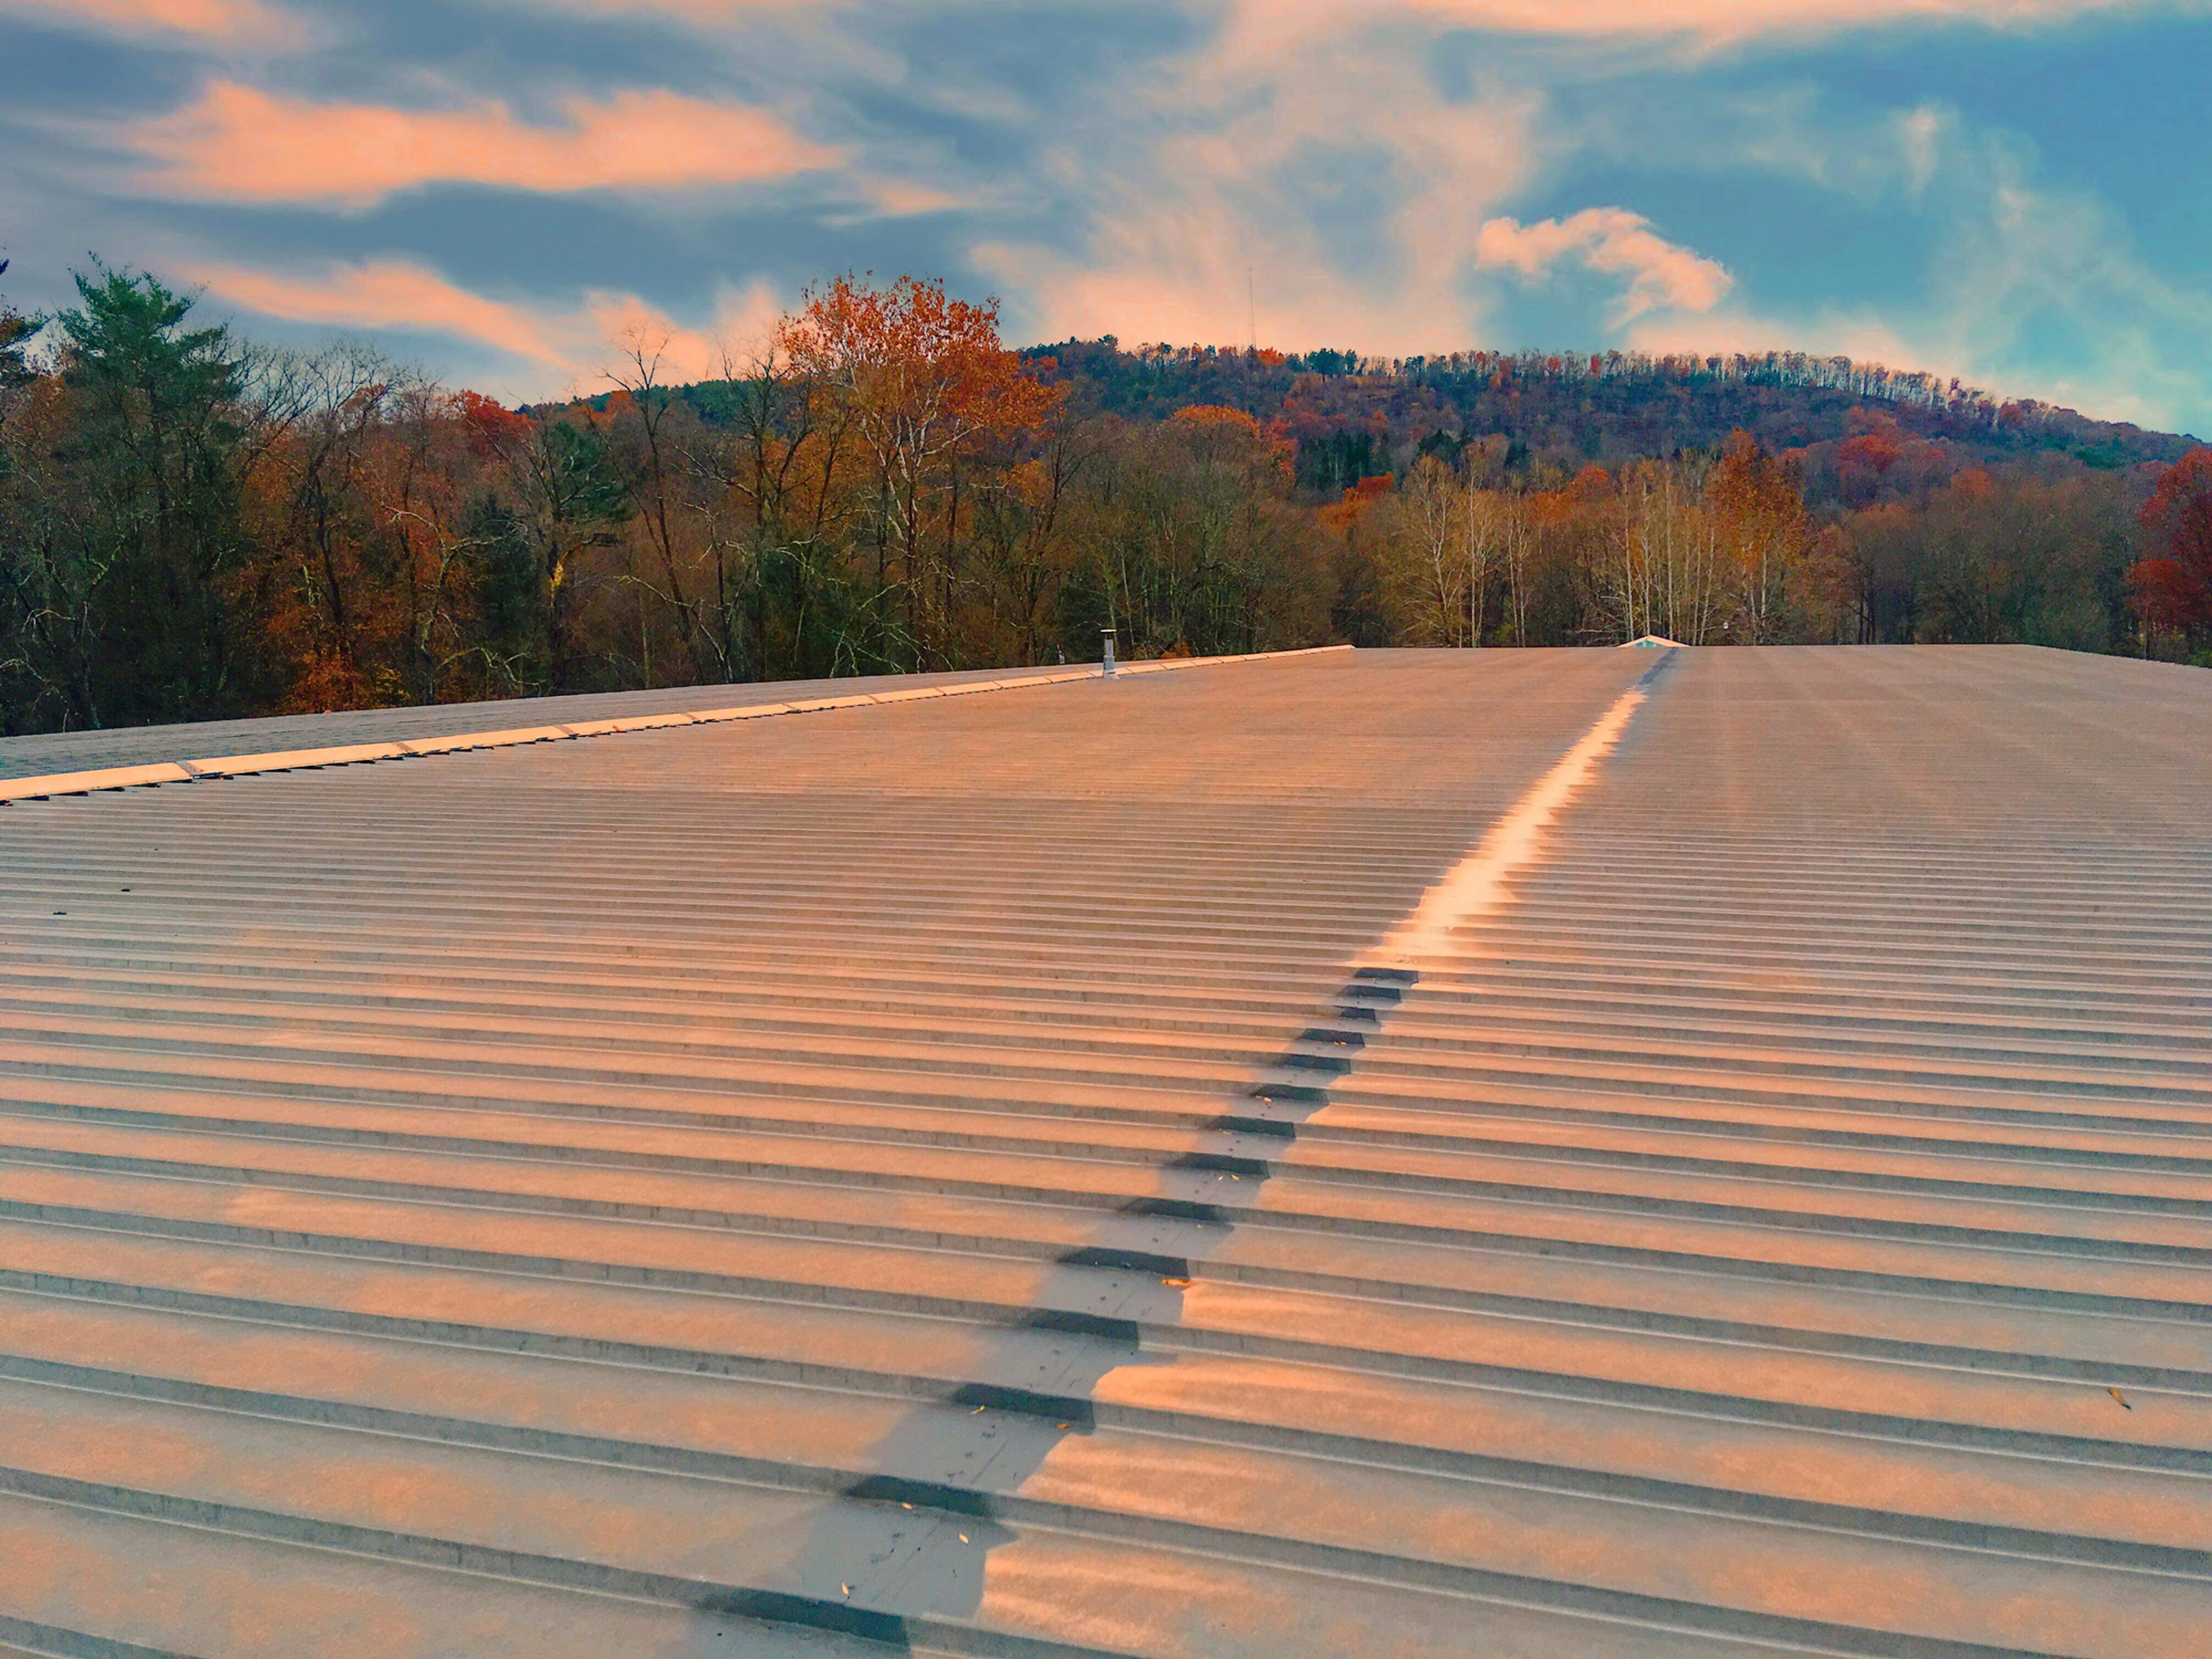 Cornell Commercial Roofing The Best Choice For All Your Roofing Needs